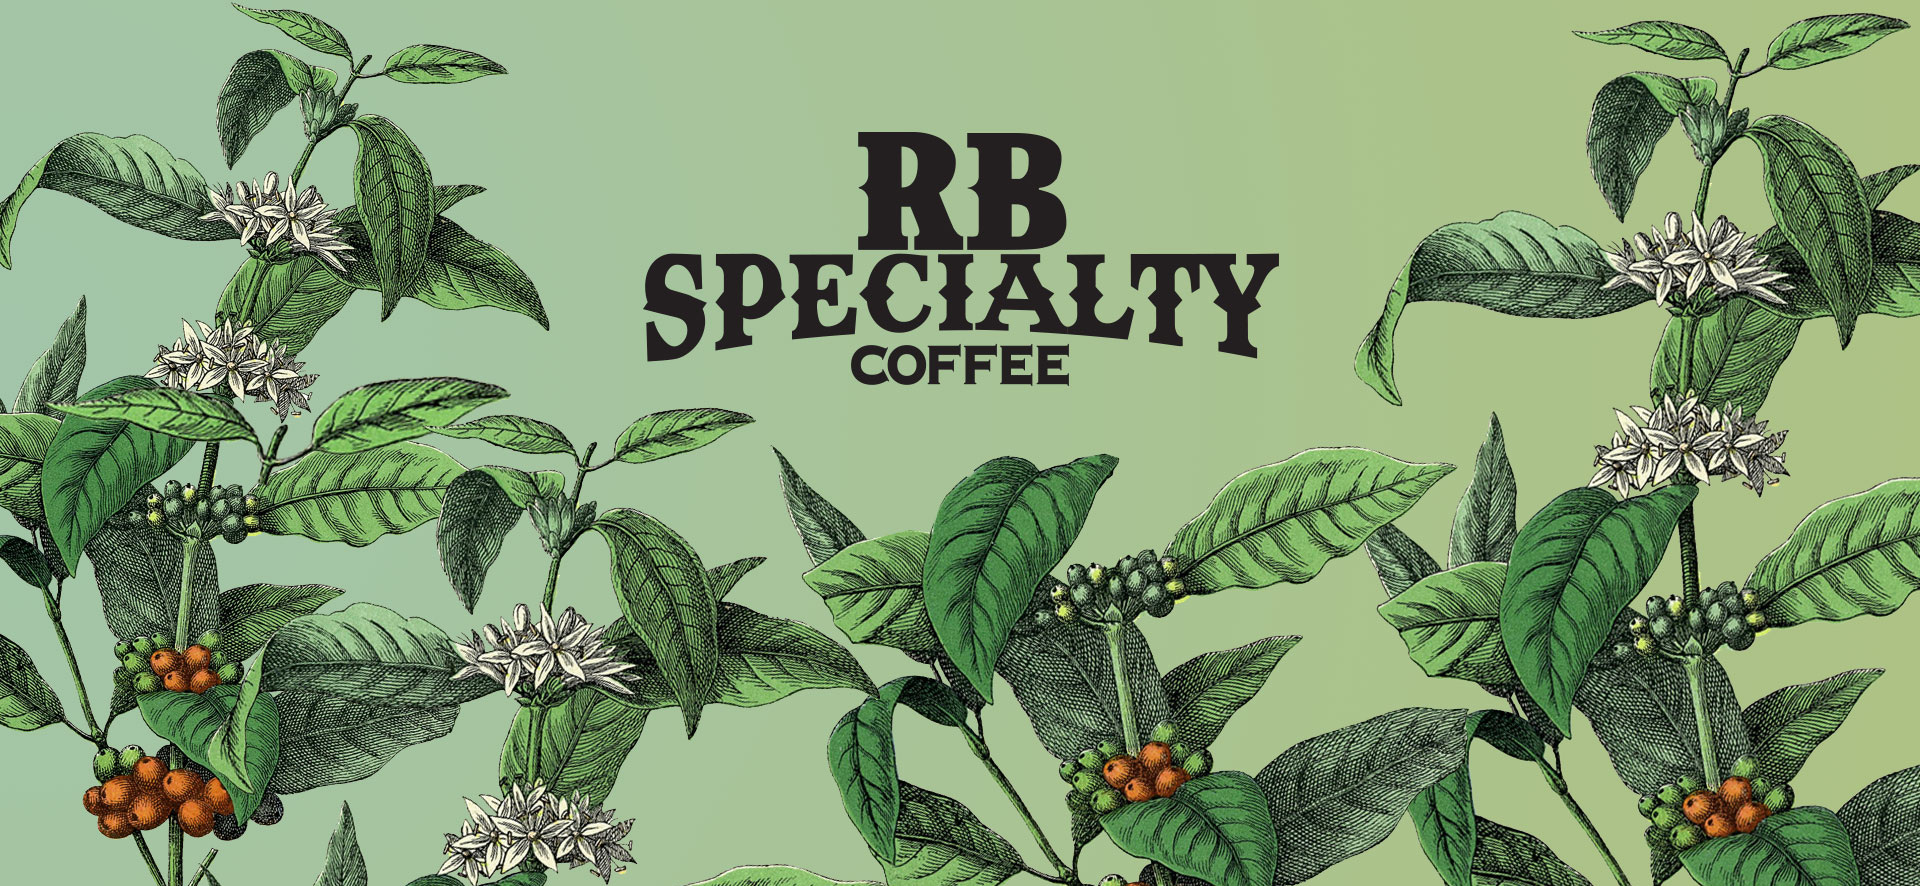 Branding, packaging and digital marketing for a coffee roaster in South Florida